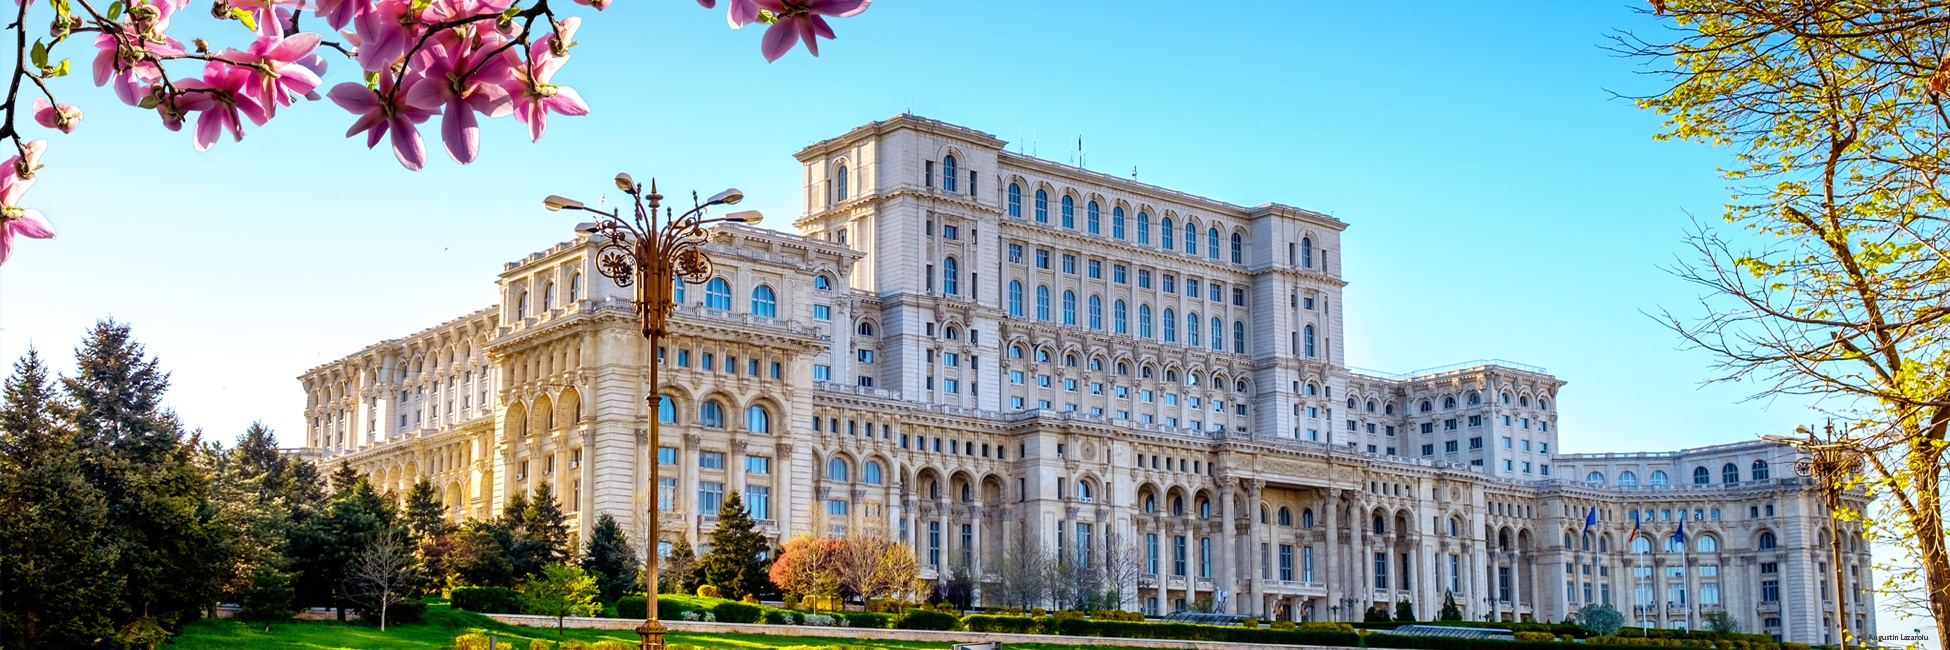 Parlement de Bucarest, Roumanie